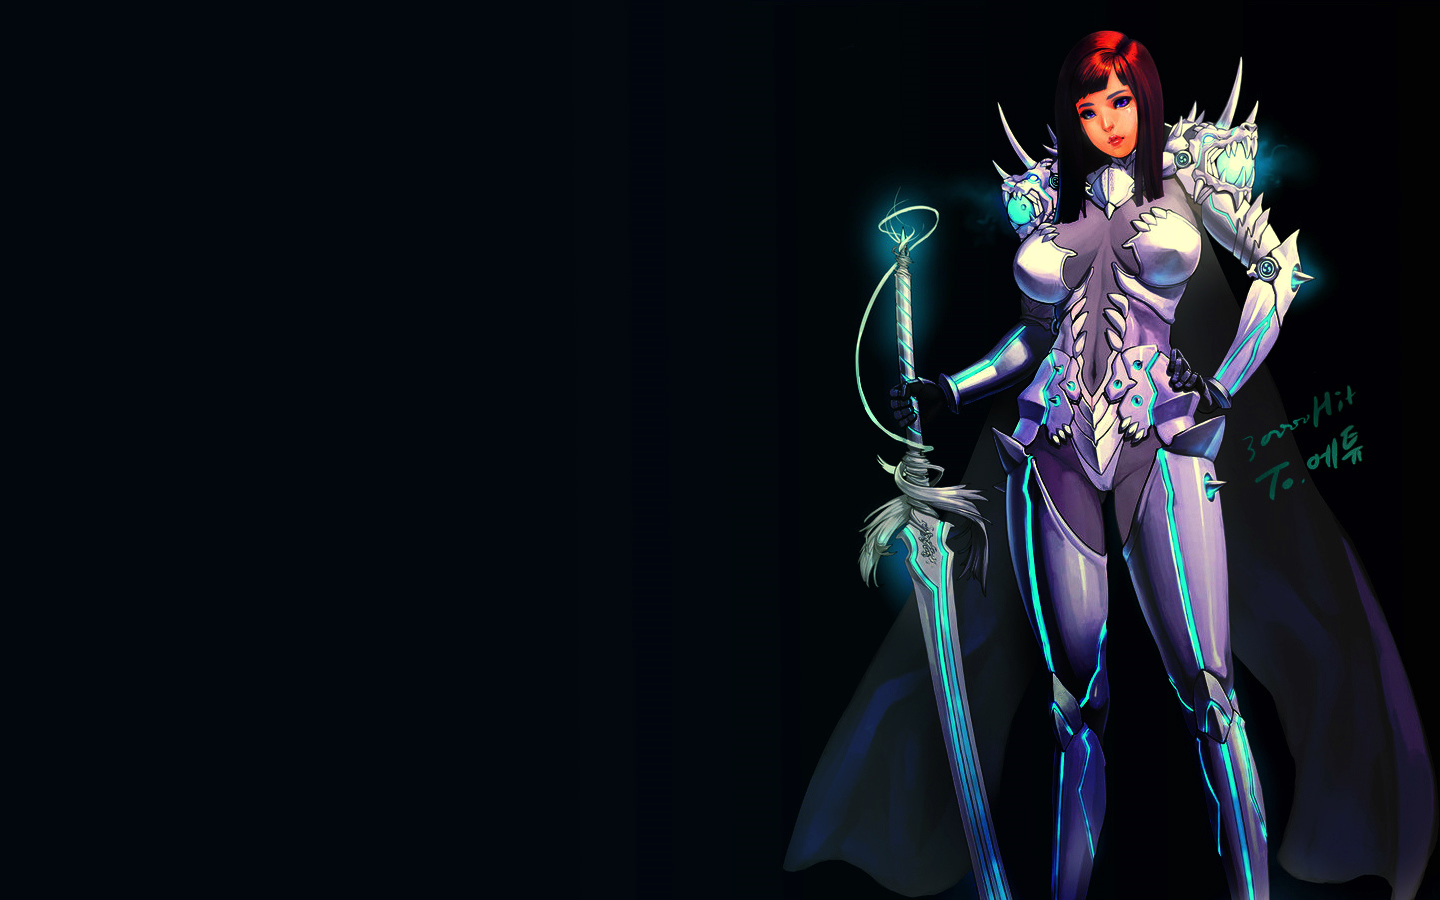 Alpha Coders Wallpaper Abyss Fantasy Women Warrior 15 1440x900